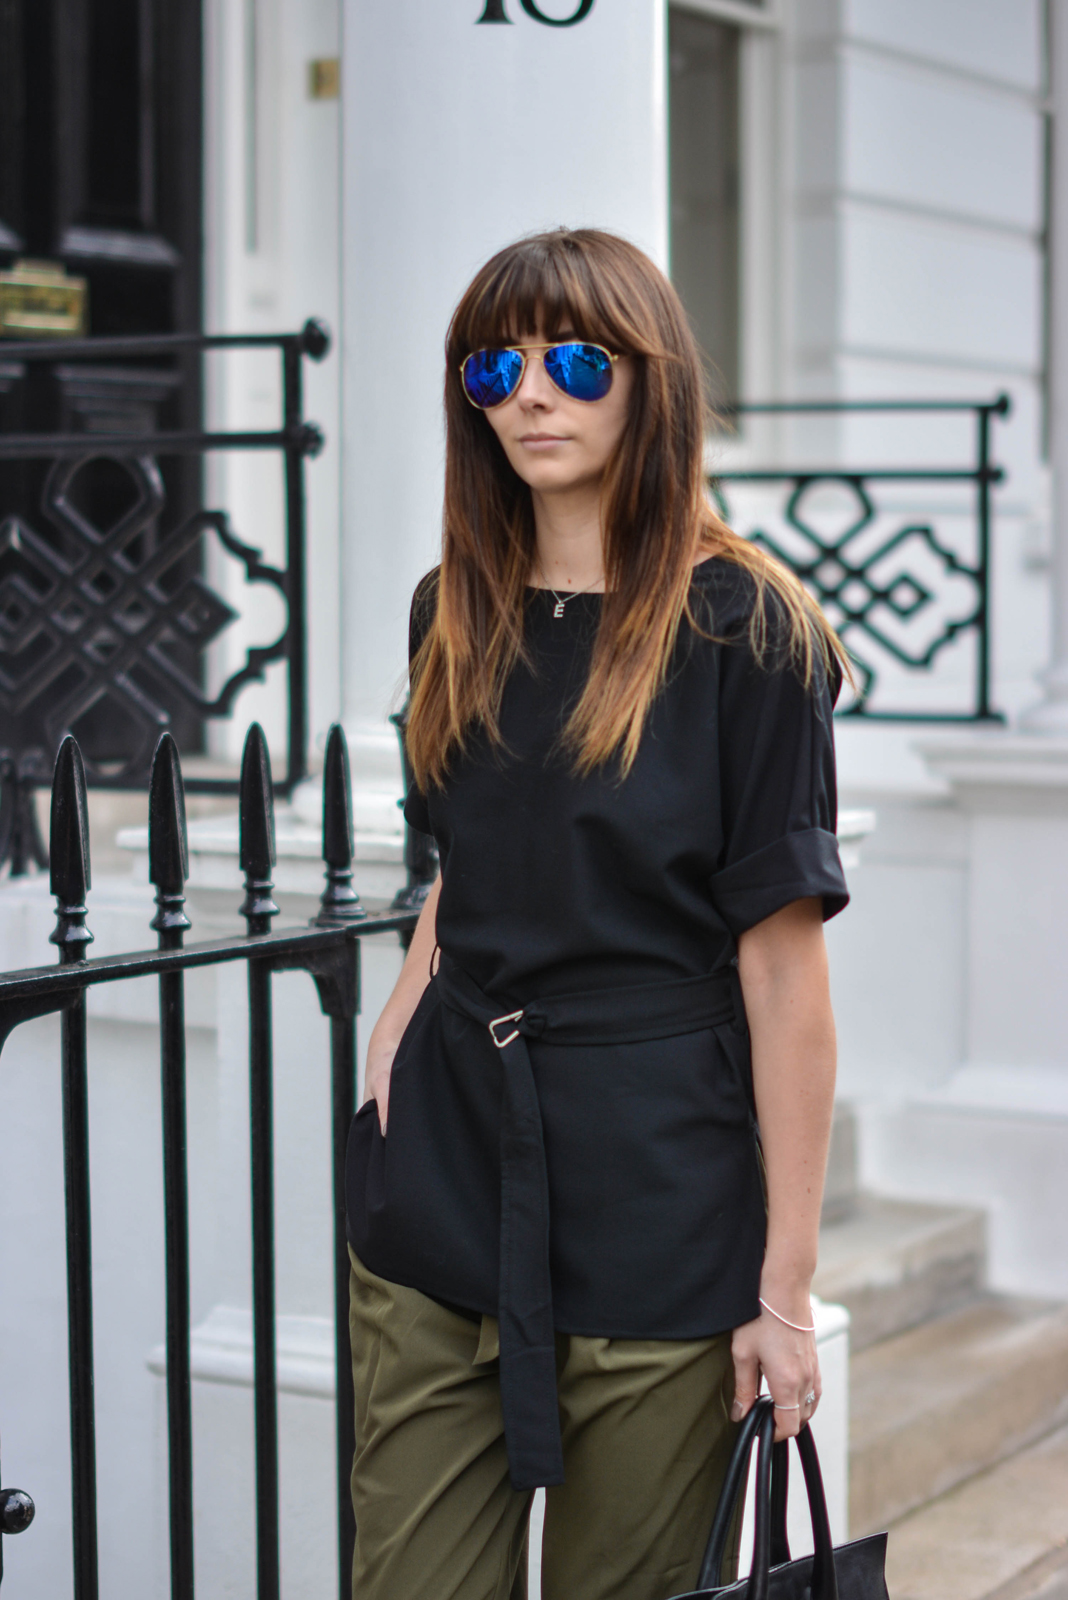 EJSTYLE - Emma Hill, London Street style, SS15, LFW, Khaki silk trousers, ASOS d ring black t shirt top, ray ban sunglasses, OOTD details